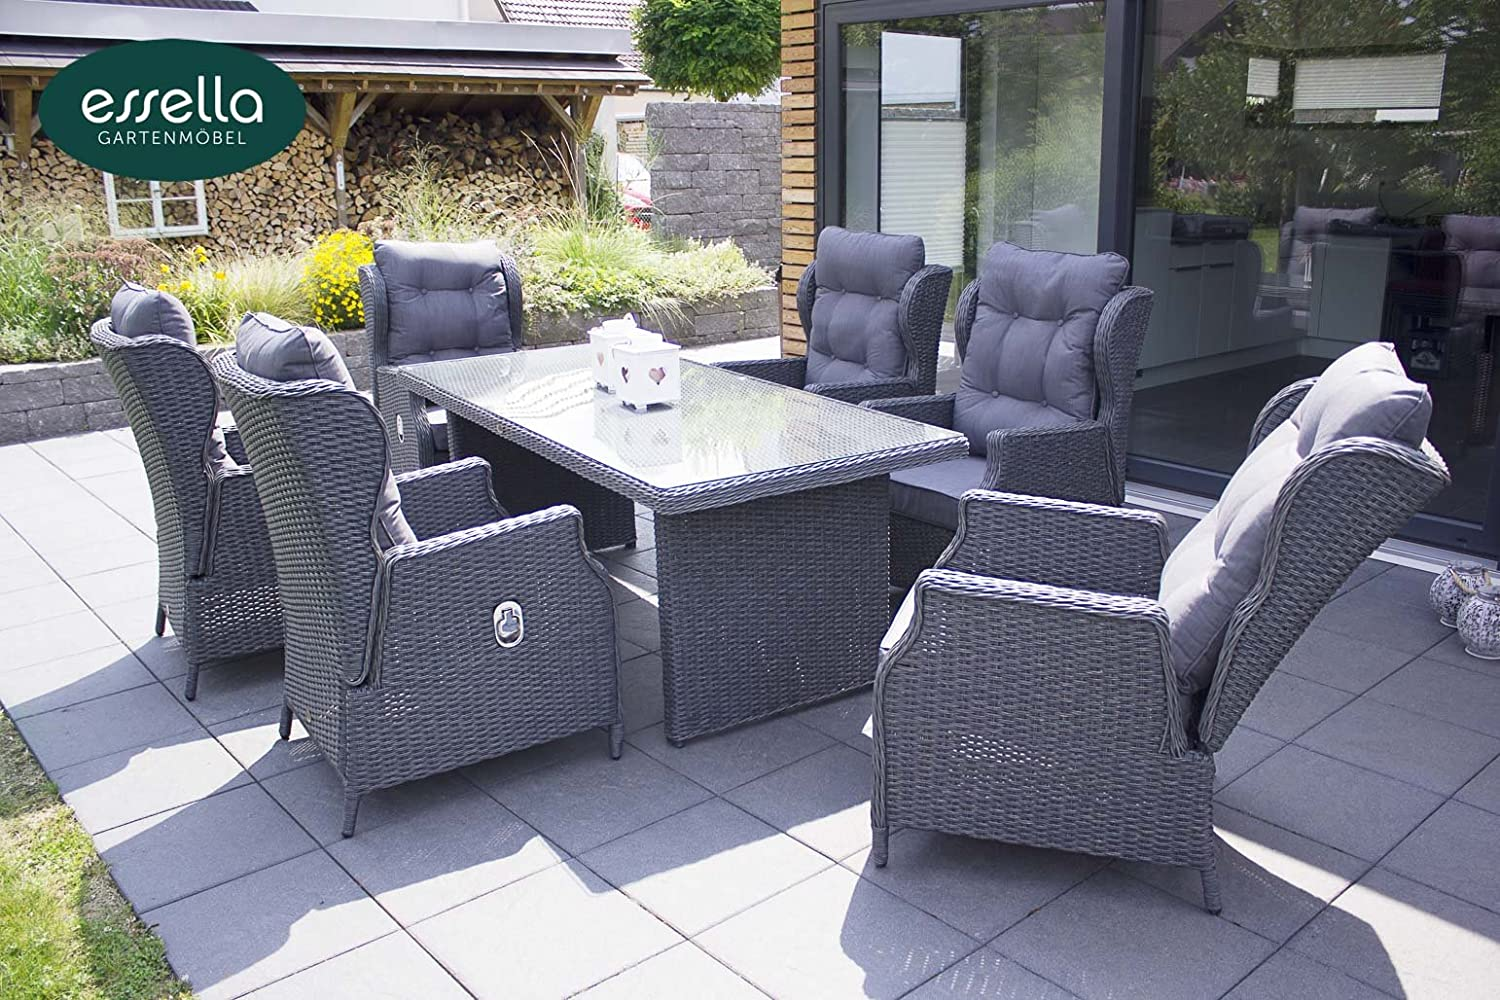 polyrattan sitzgruppe kingston 6 personen rundgeflecht grau meliert gartenm bel. Black Bedroom Furniture Sets. Home Design Ideas